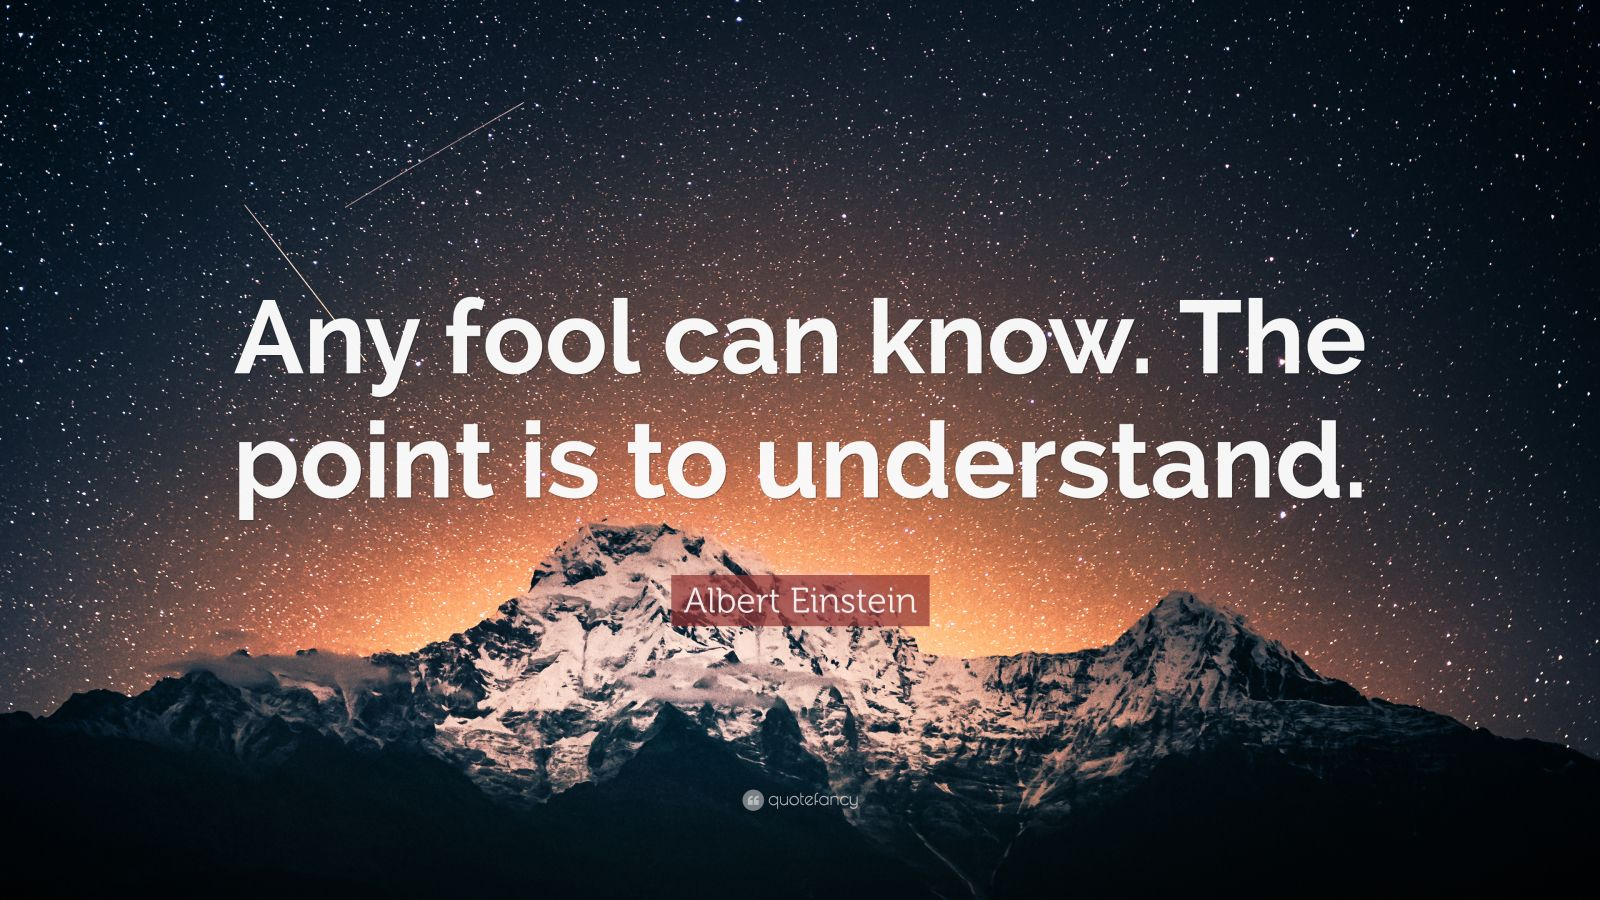 Motivational Life Quotes Wallpapers Albert Einstein Quote Any Fool Can Know The Point Is To